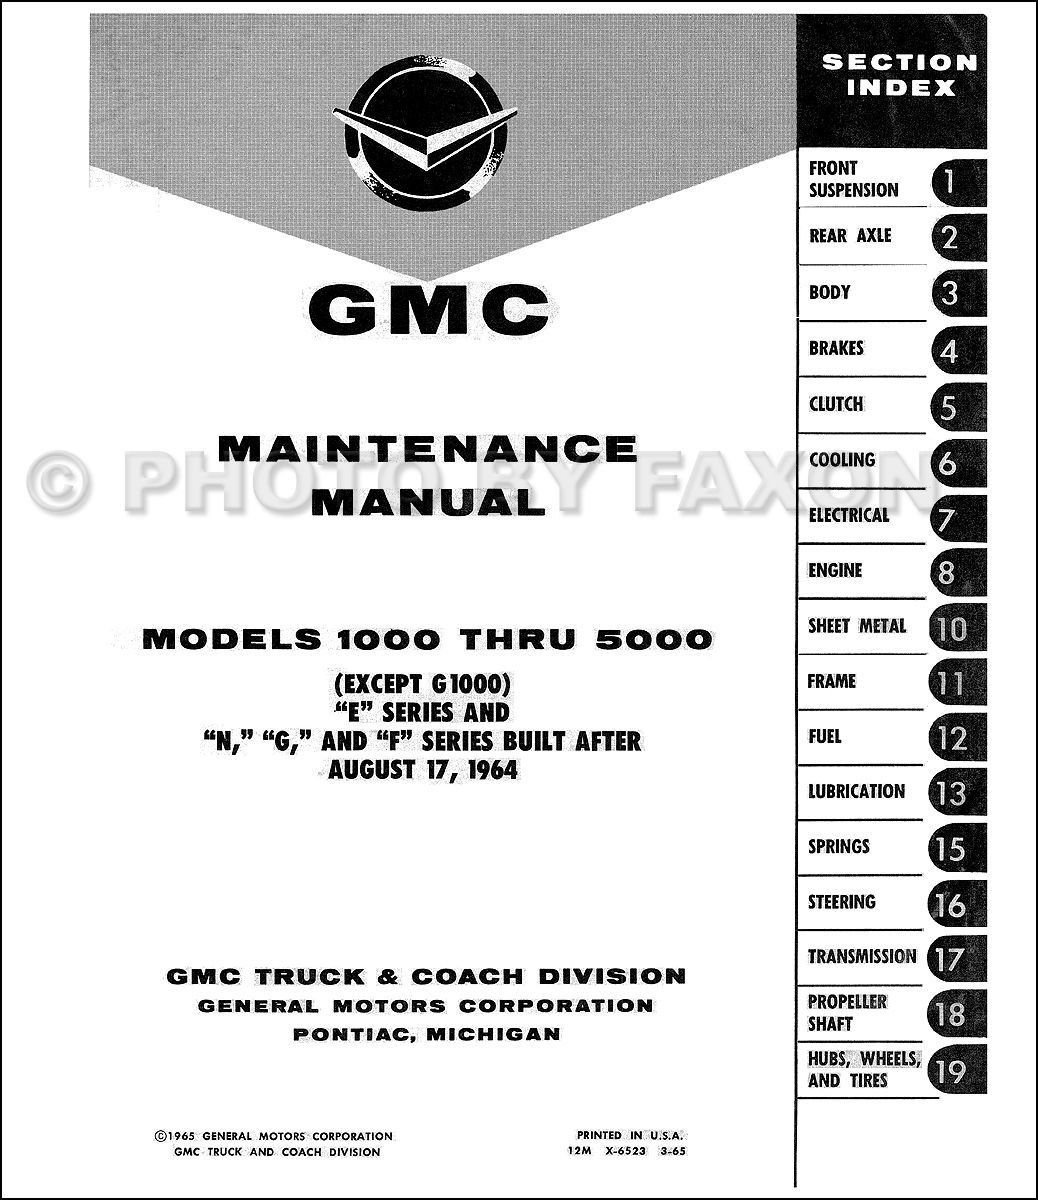 ... GMC 1000-5000 Repair Manual Original. Table of Contents